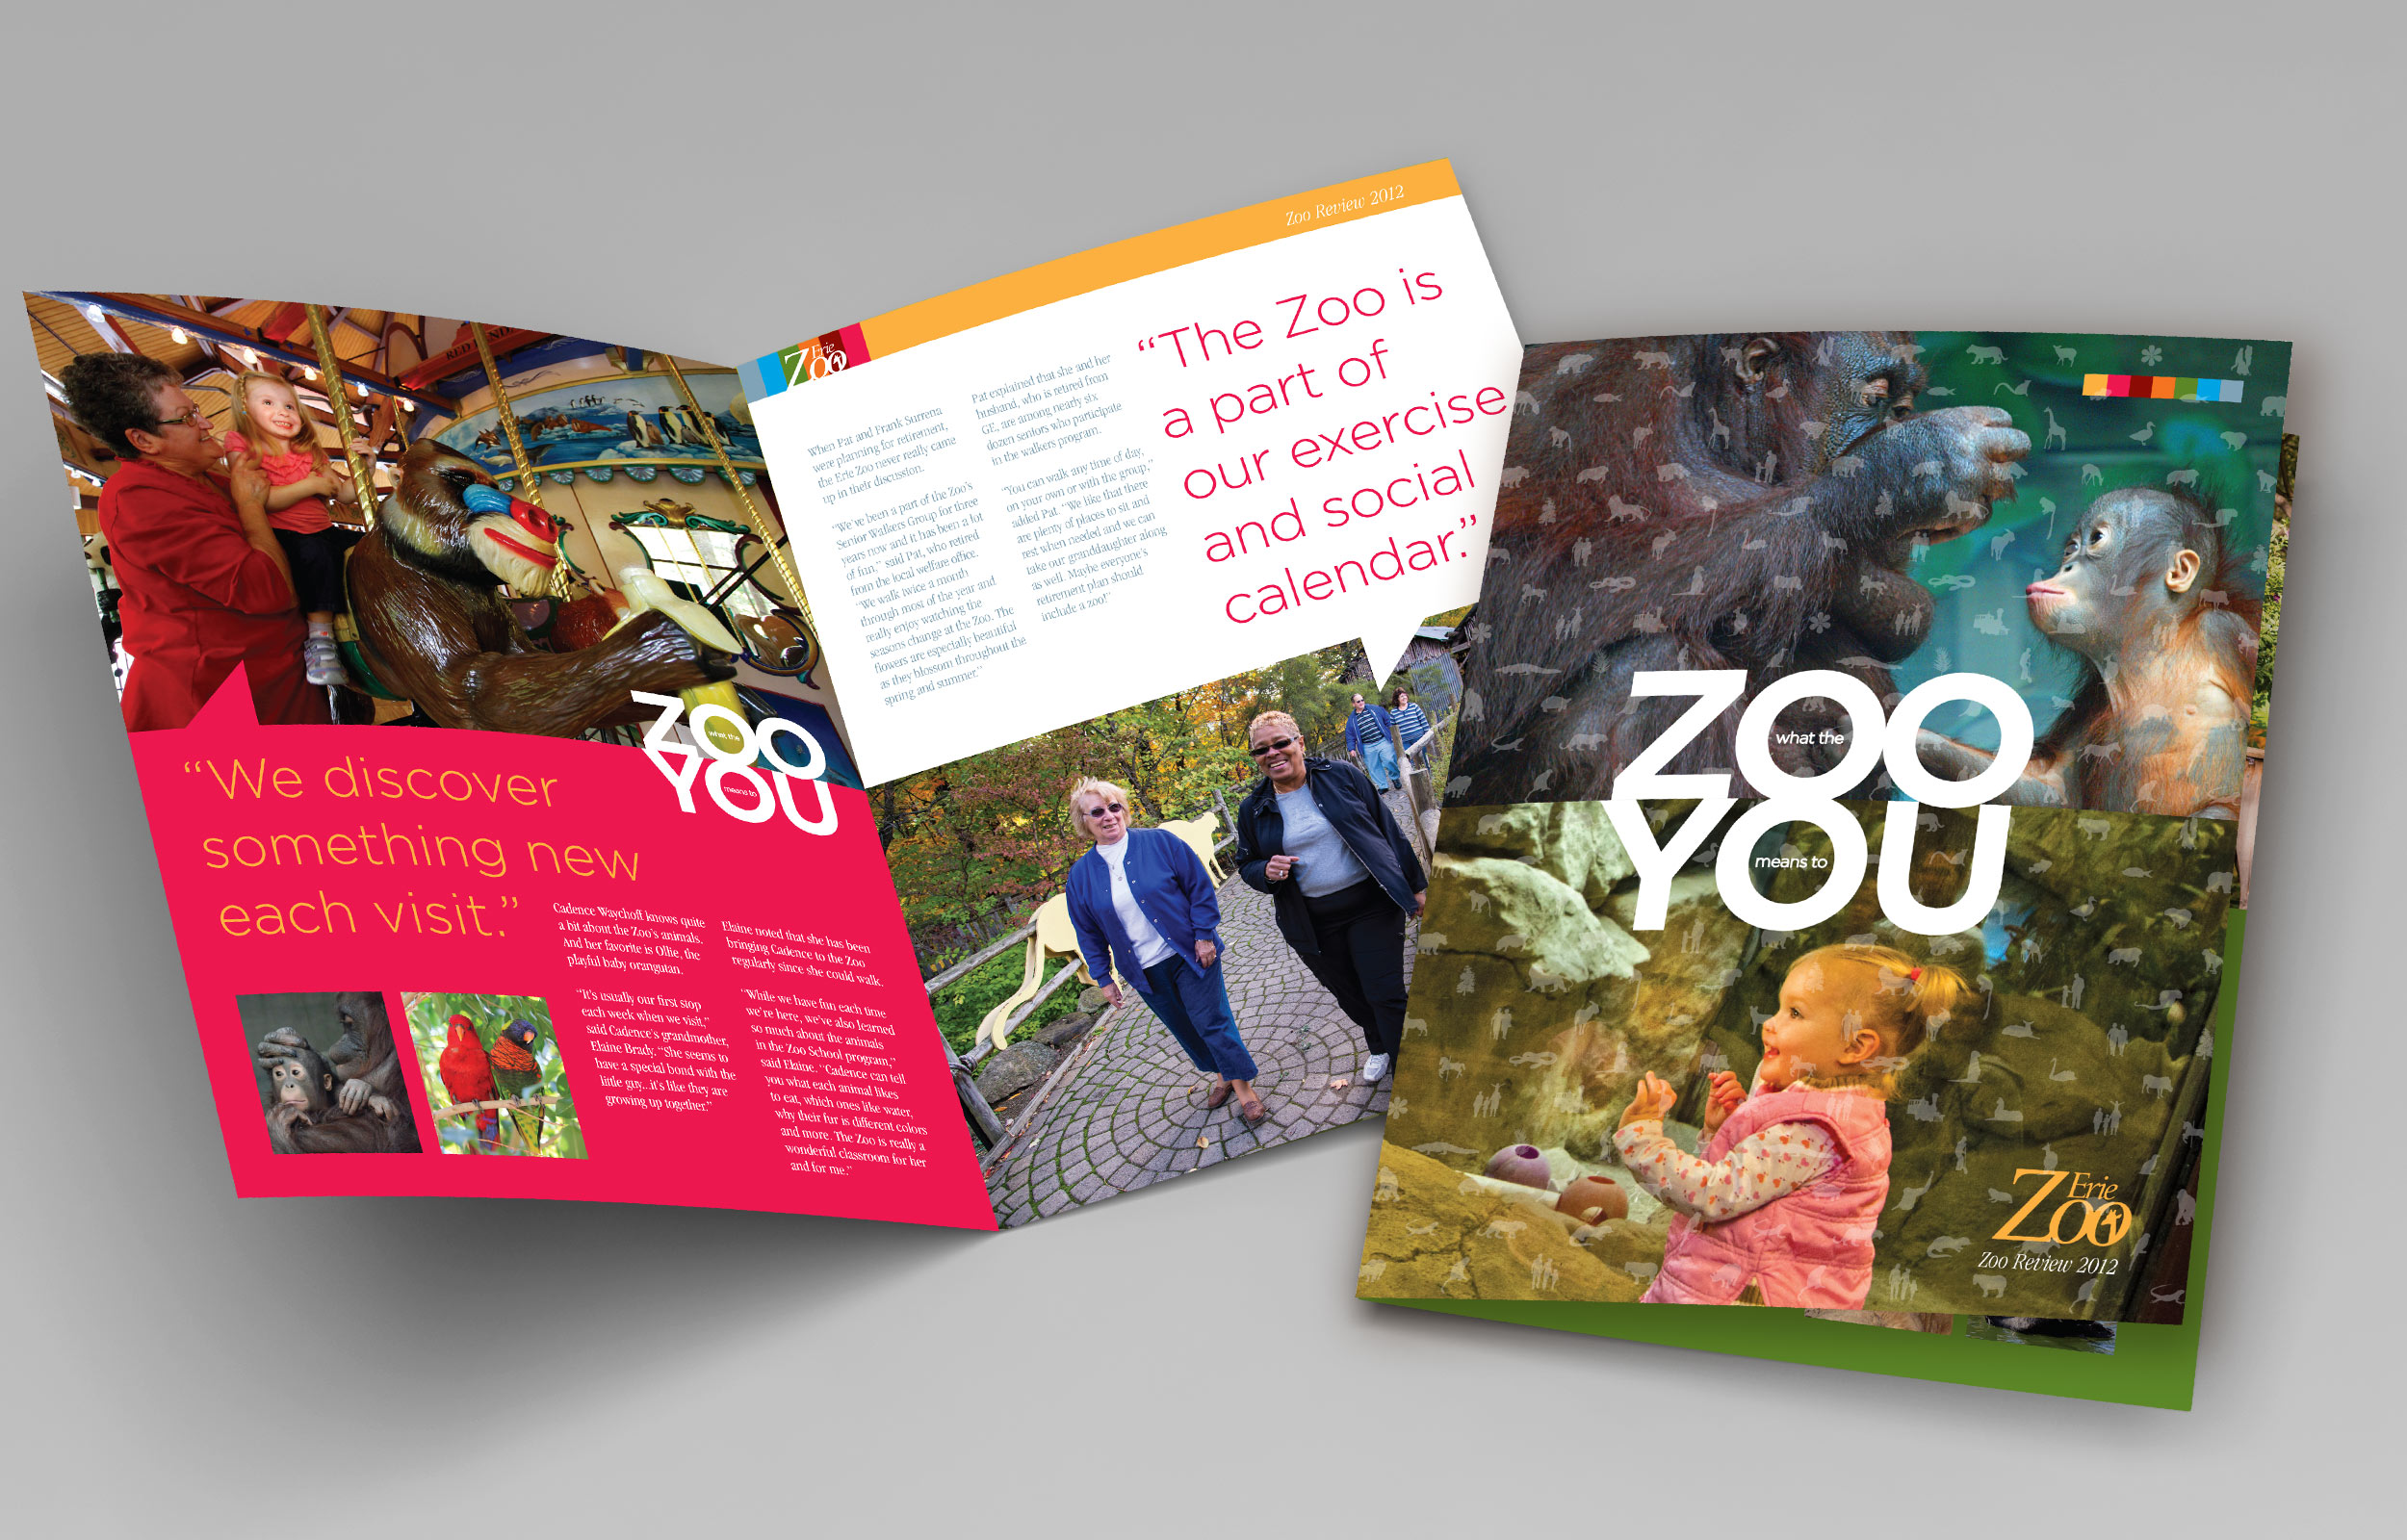 https://papaadvertising.com/wp-content/uploads/2015/05/zoo_annual_2012.jpg